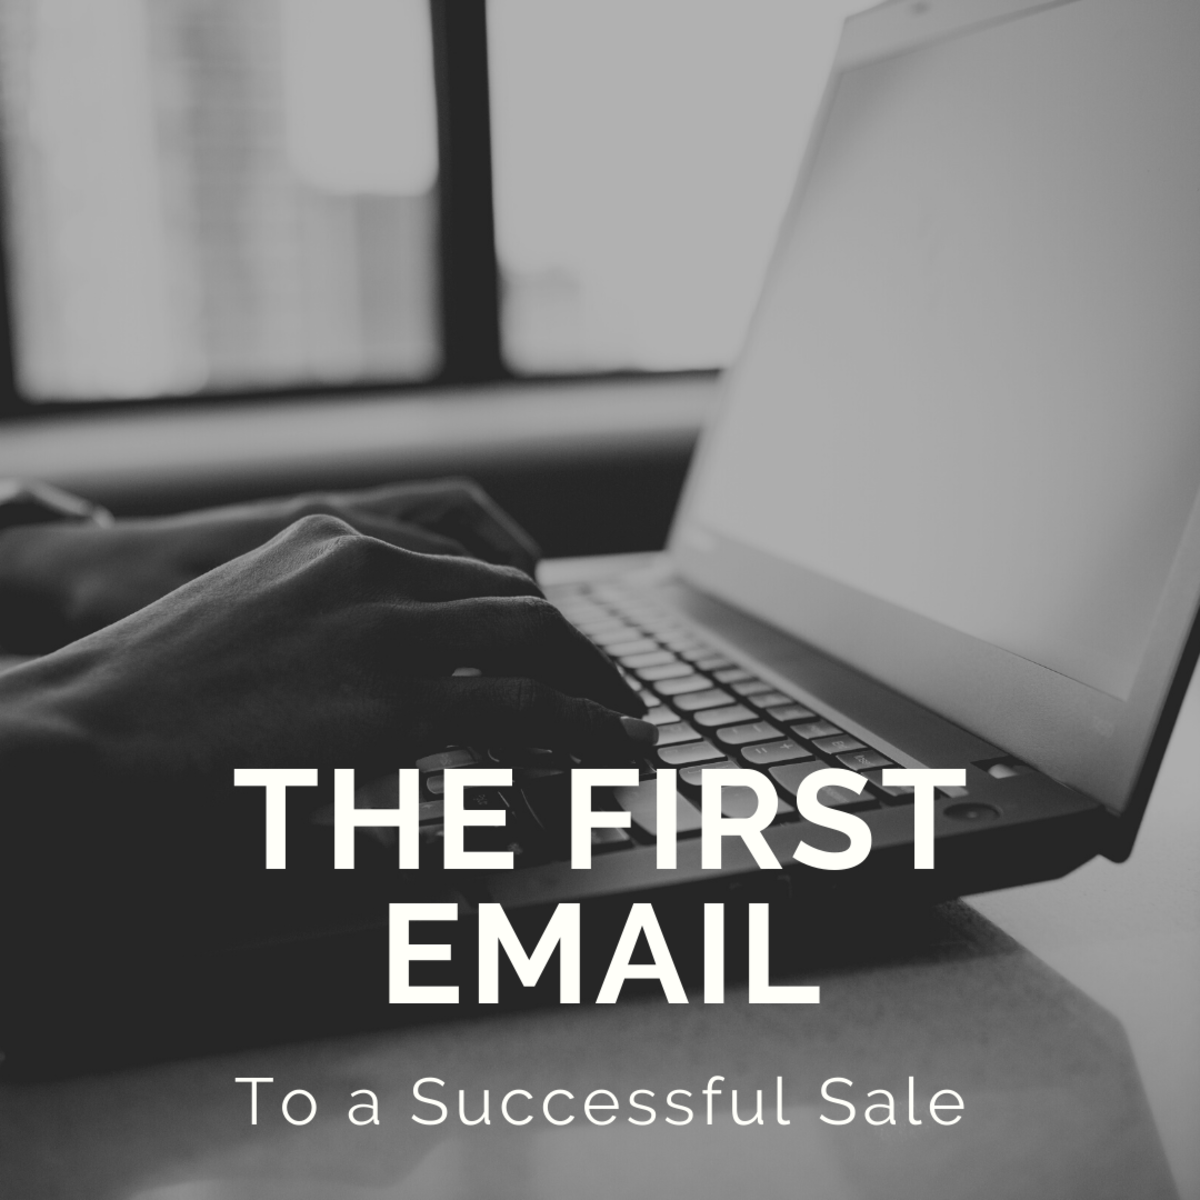 How to Write the First Email to a Successful Sale